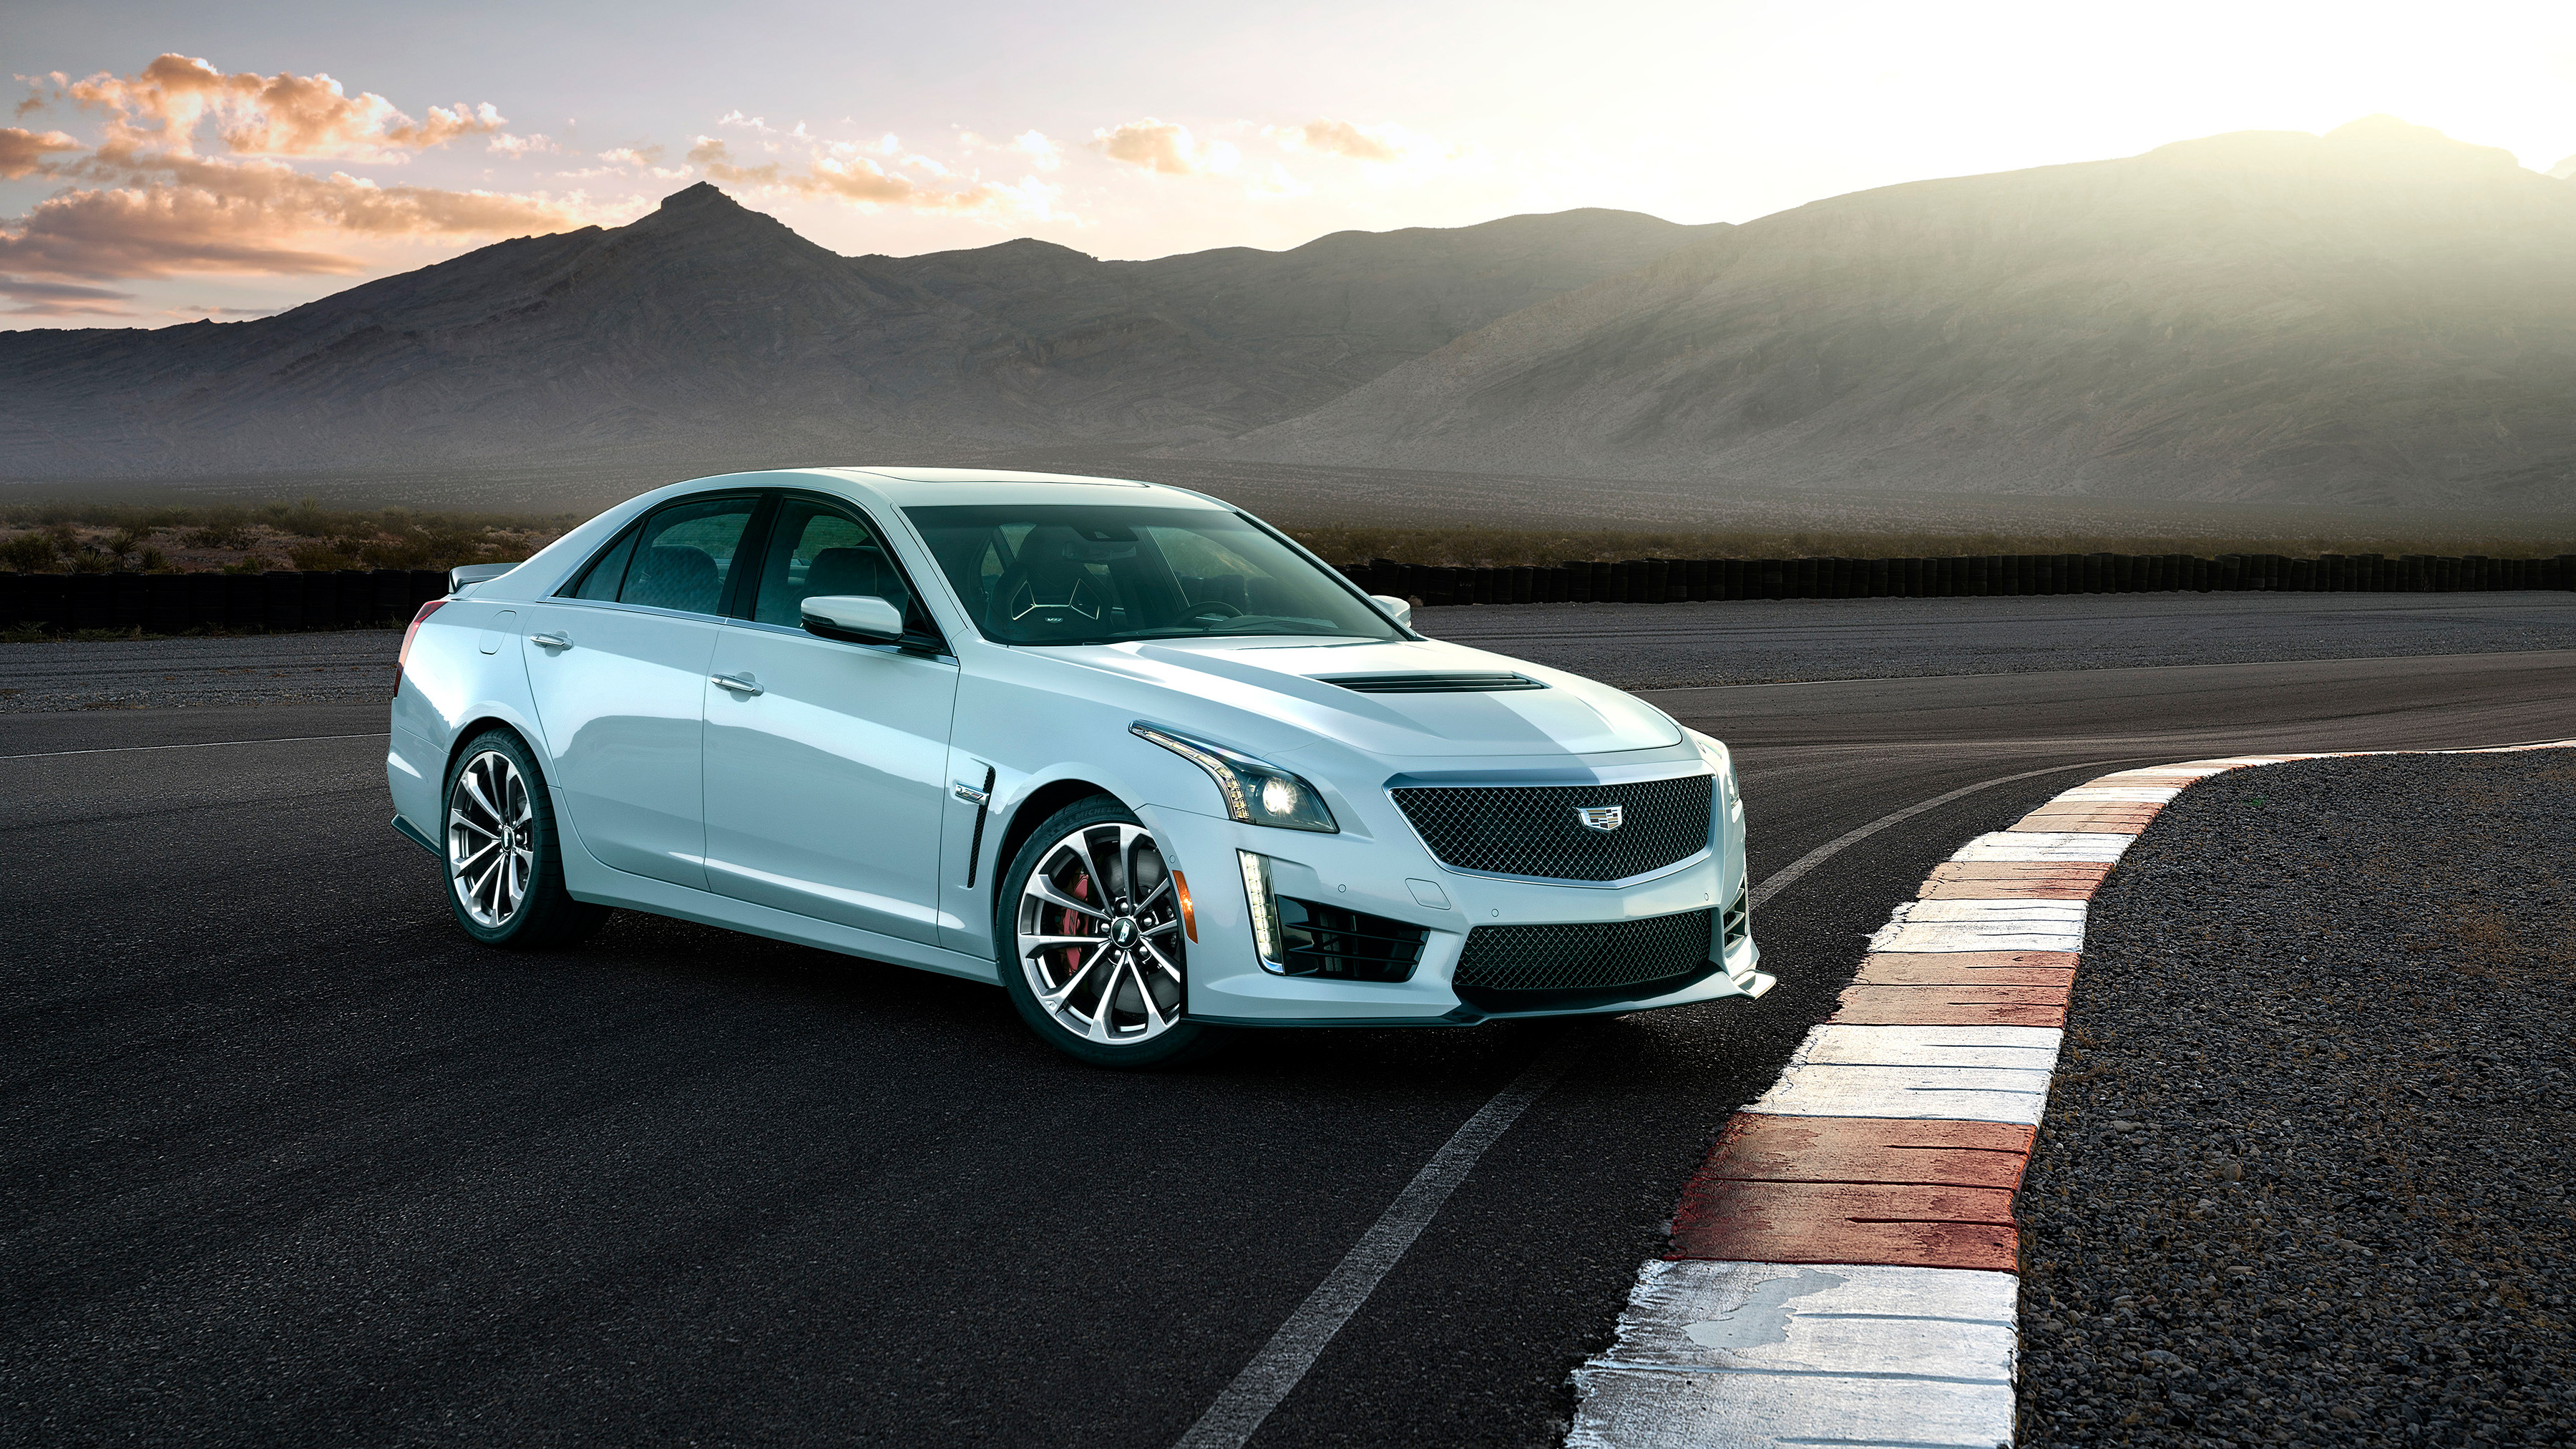 2017 Cadillac Cts V Wallpaper Hd Car Wallpapers Id 8273